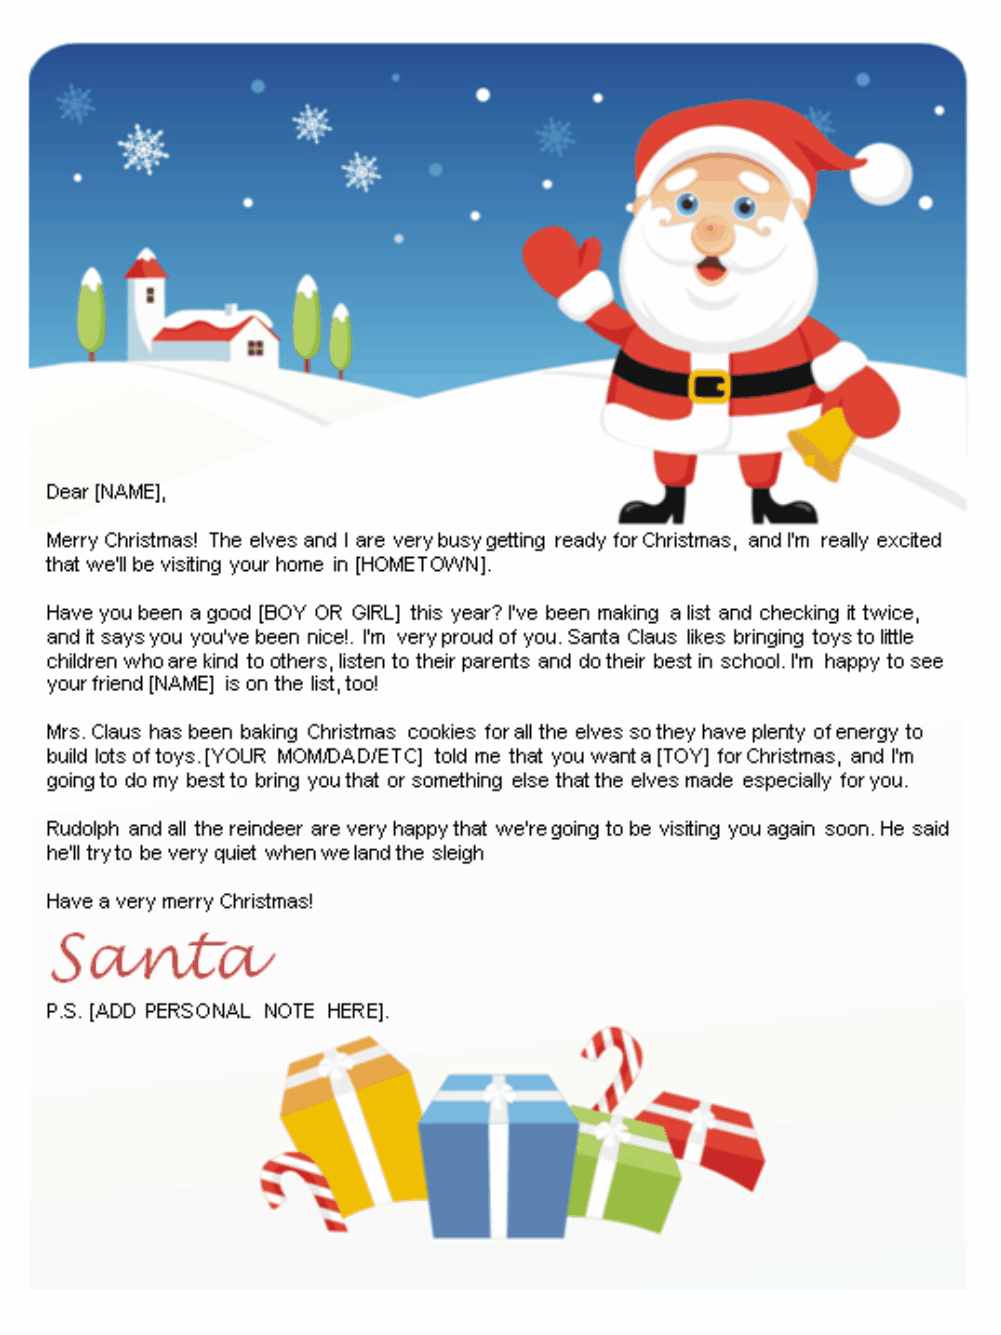 Free Letters From Santa | Santa Letters To Print At Home - Gifts - Free Printable Christmas Letters From Santa